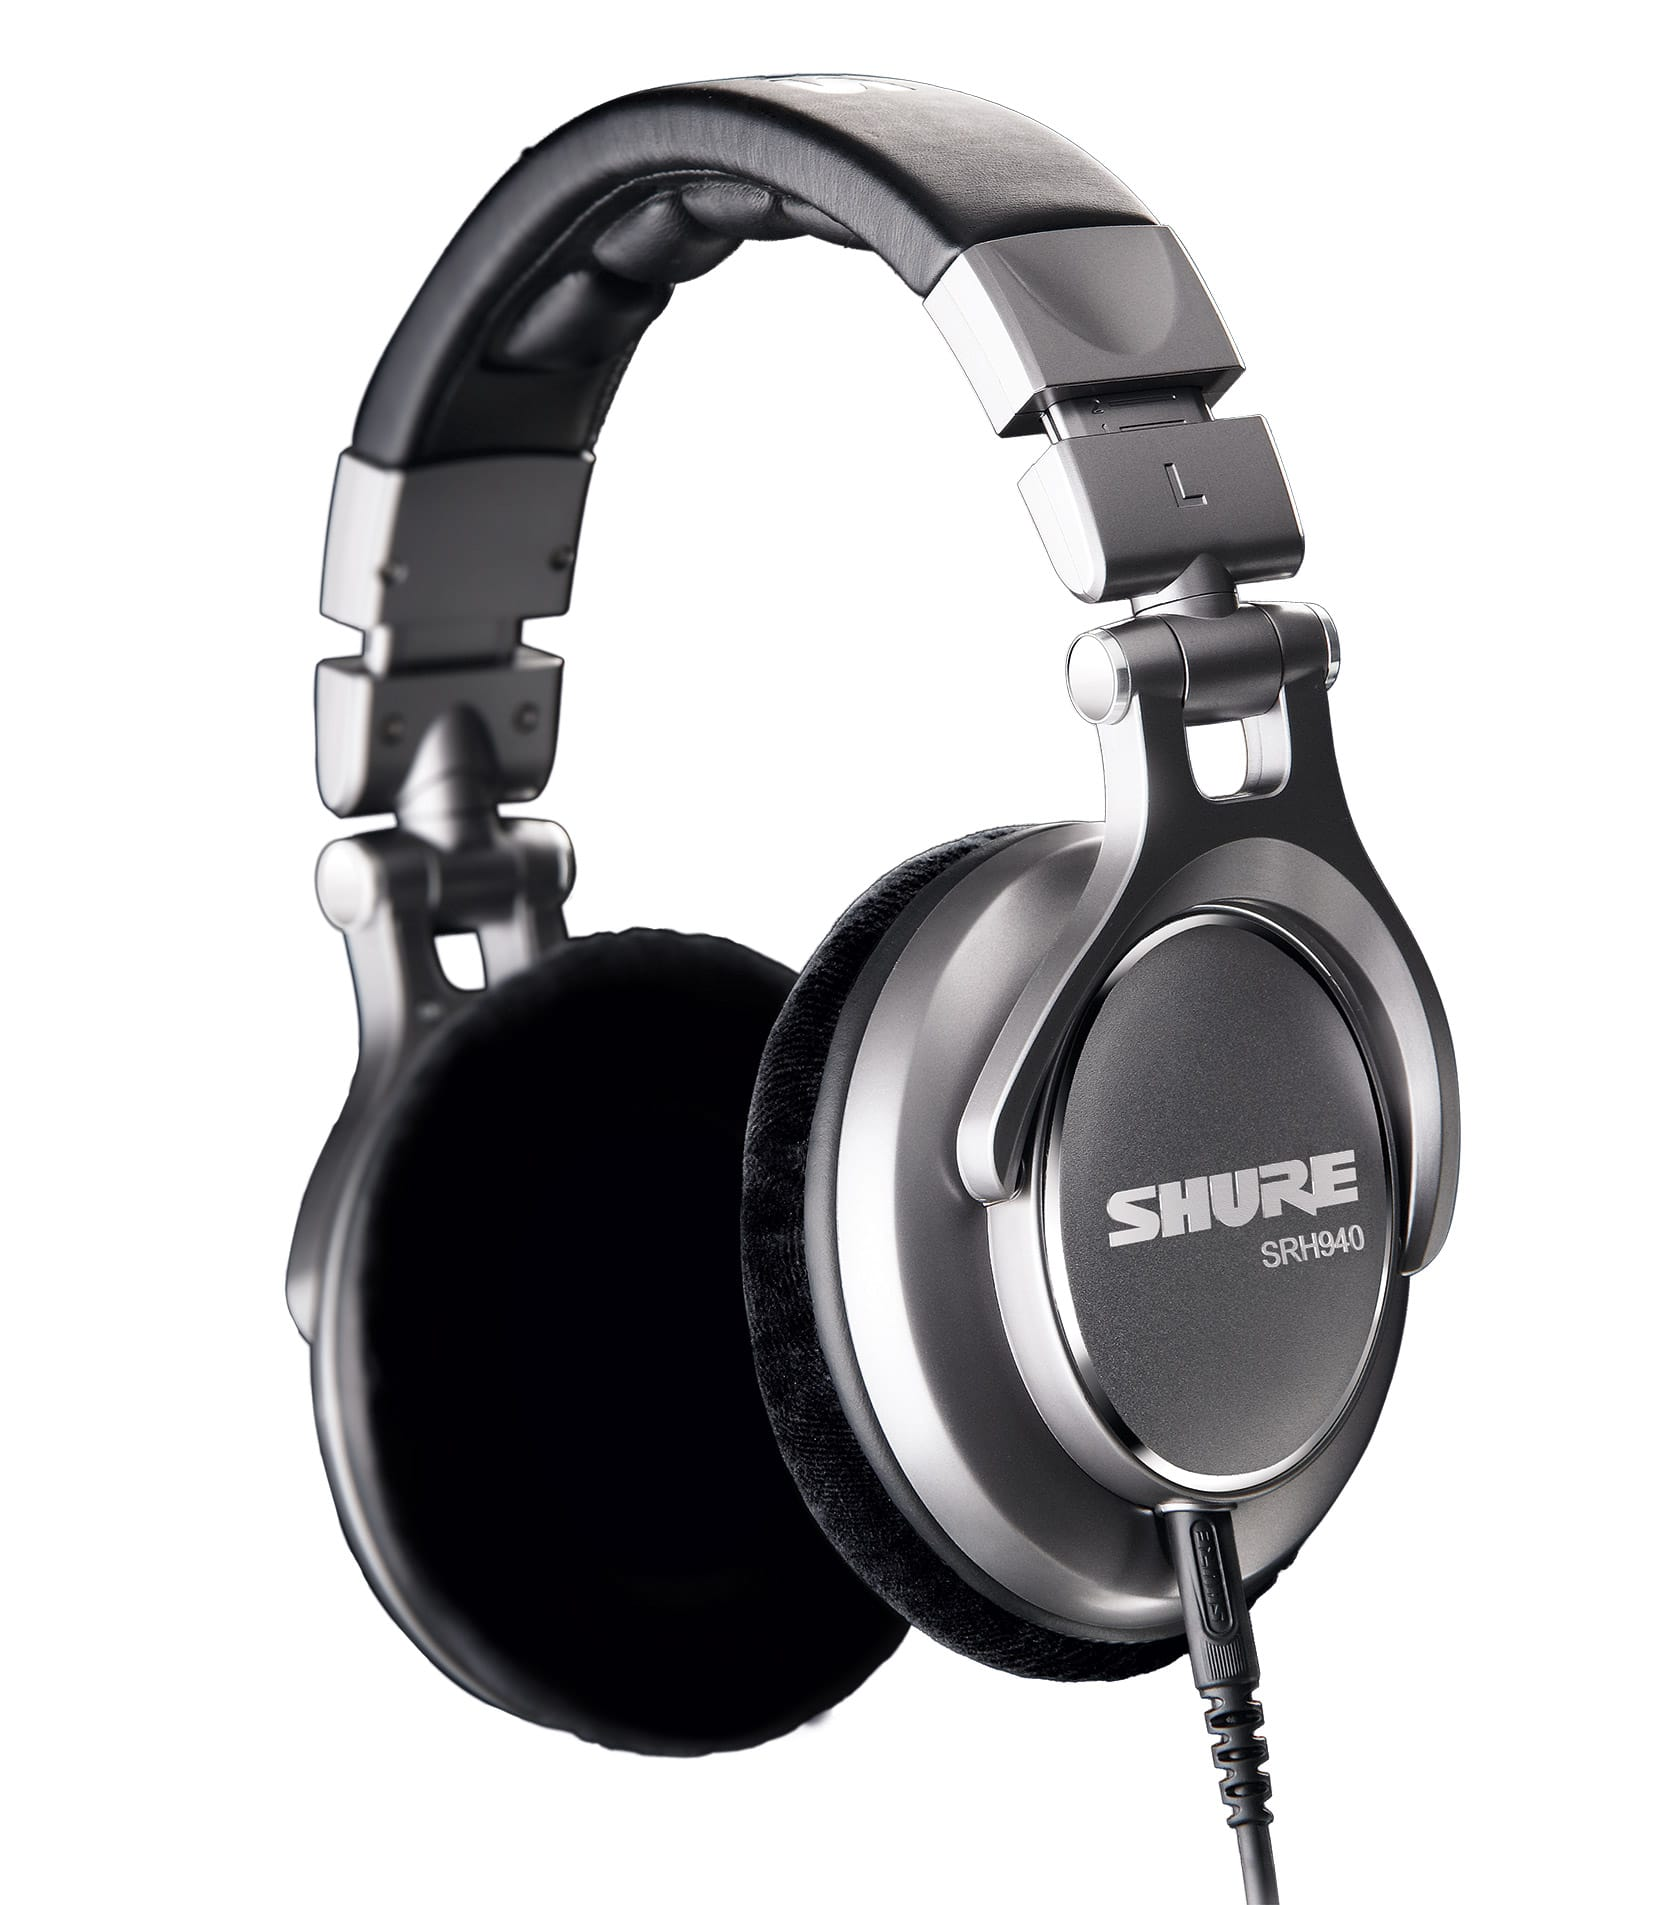 shure - SRH940 E Professional Reference Headphones - Melody House Musical Instruments